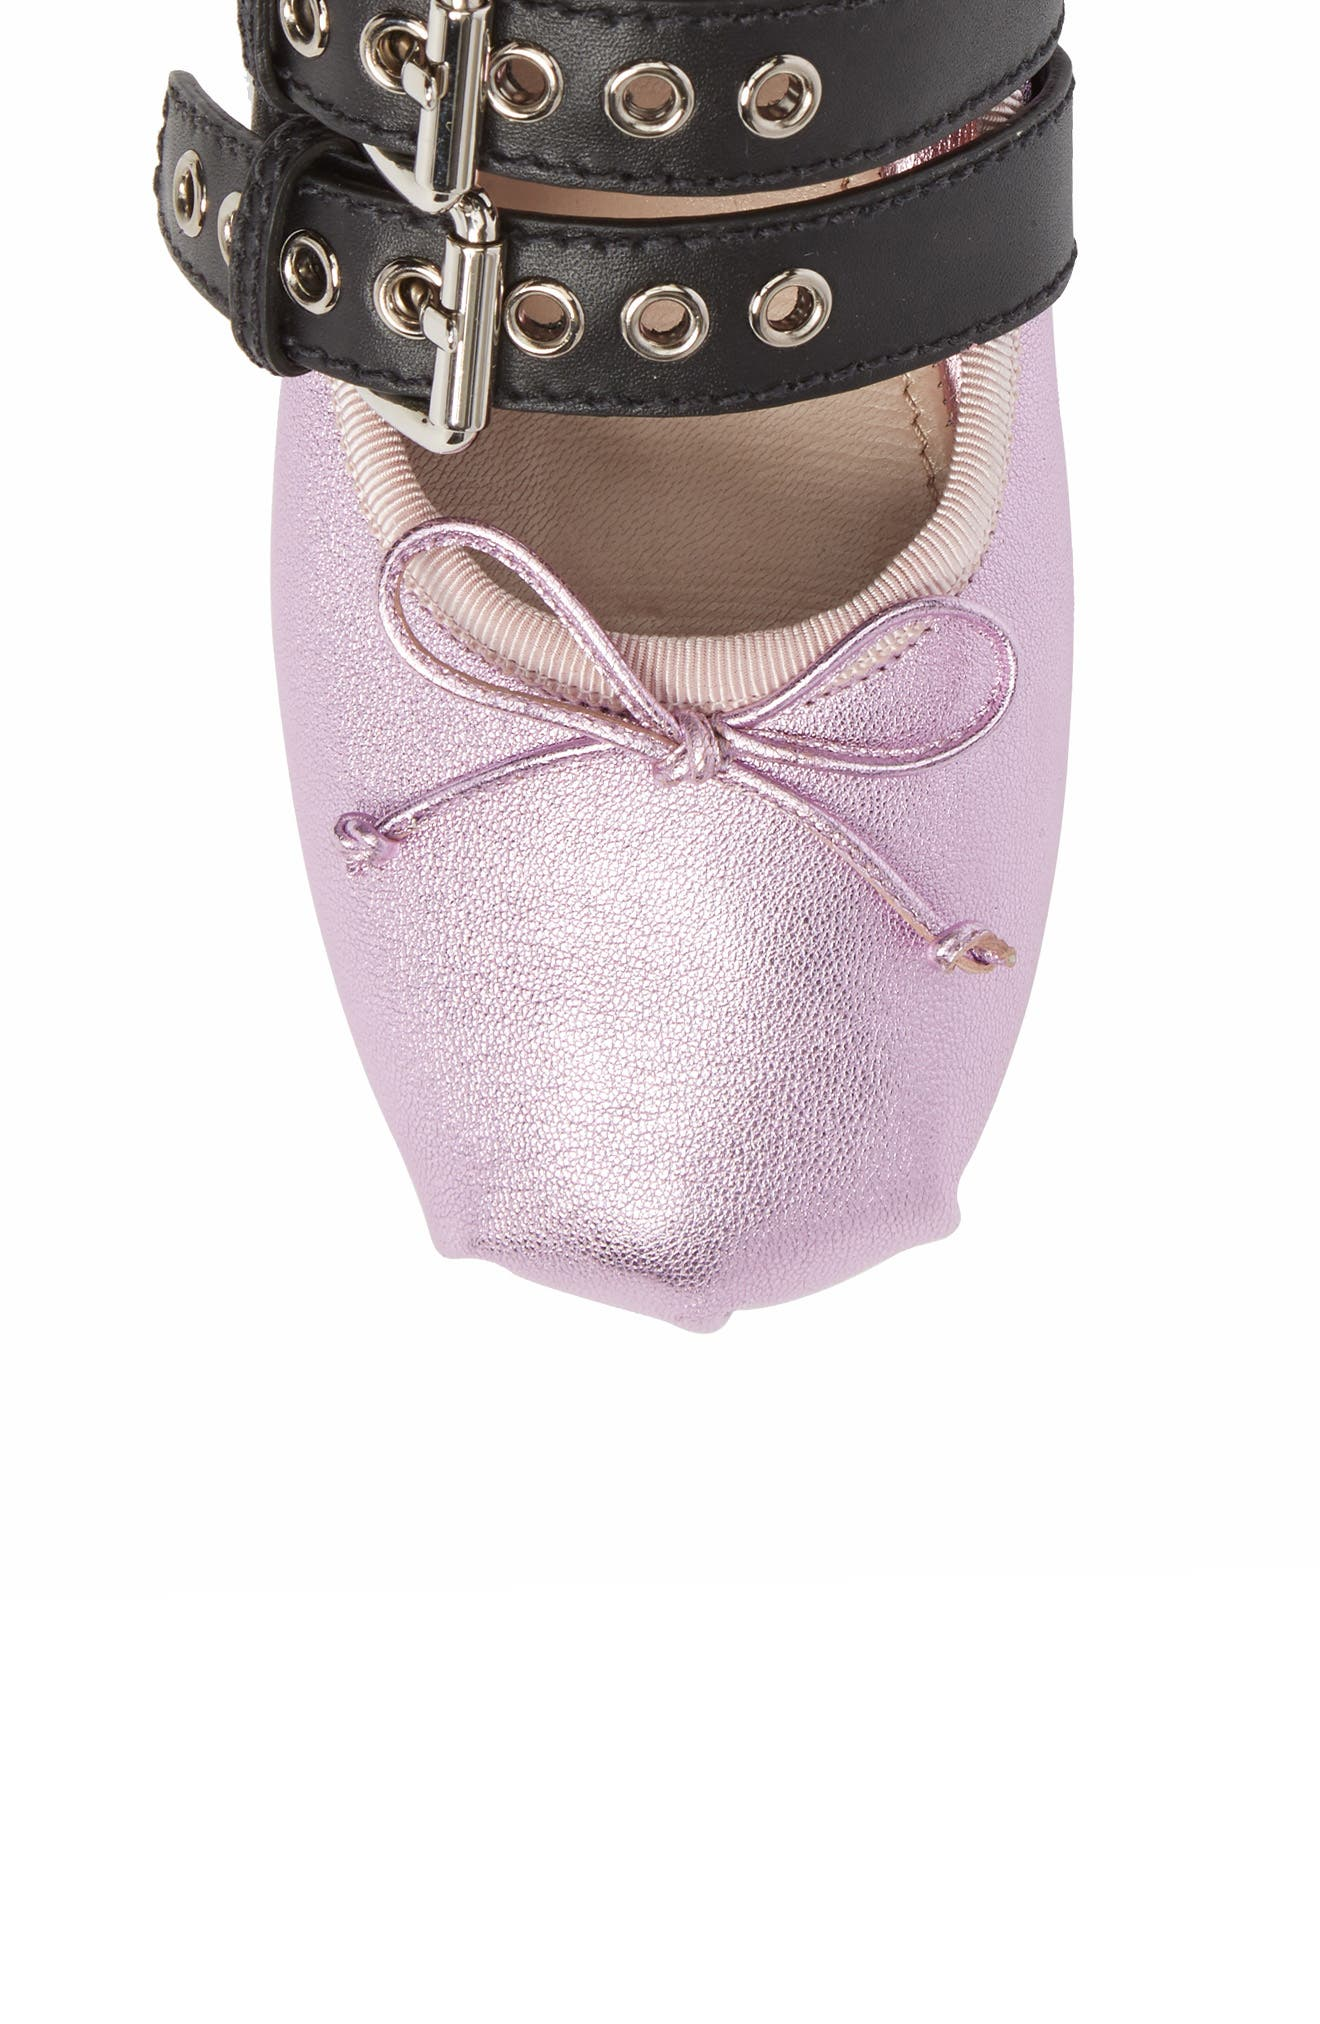 MIU MIU,                             Lace-Up Ballerina Flat,                             Alternate thumbnail 5, color,                             650